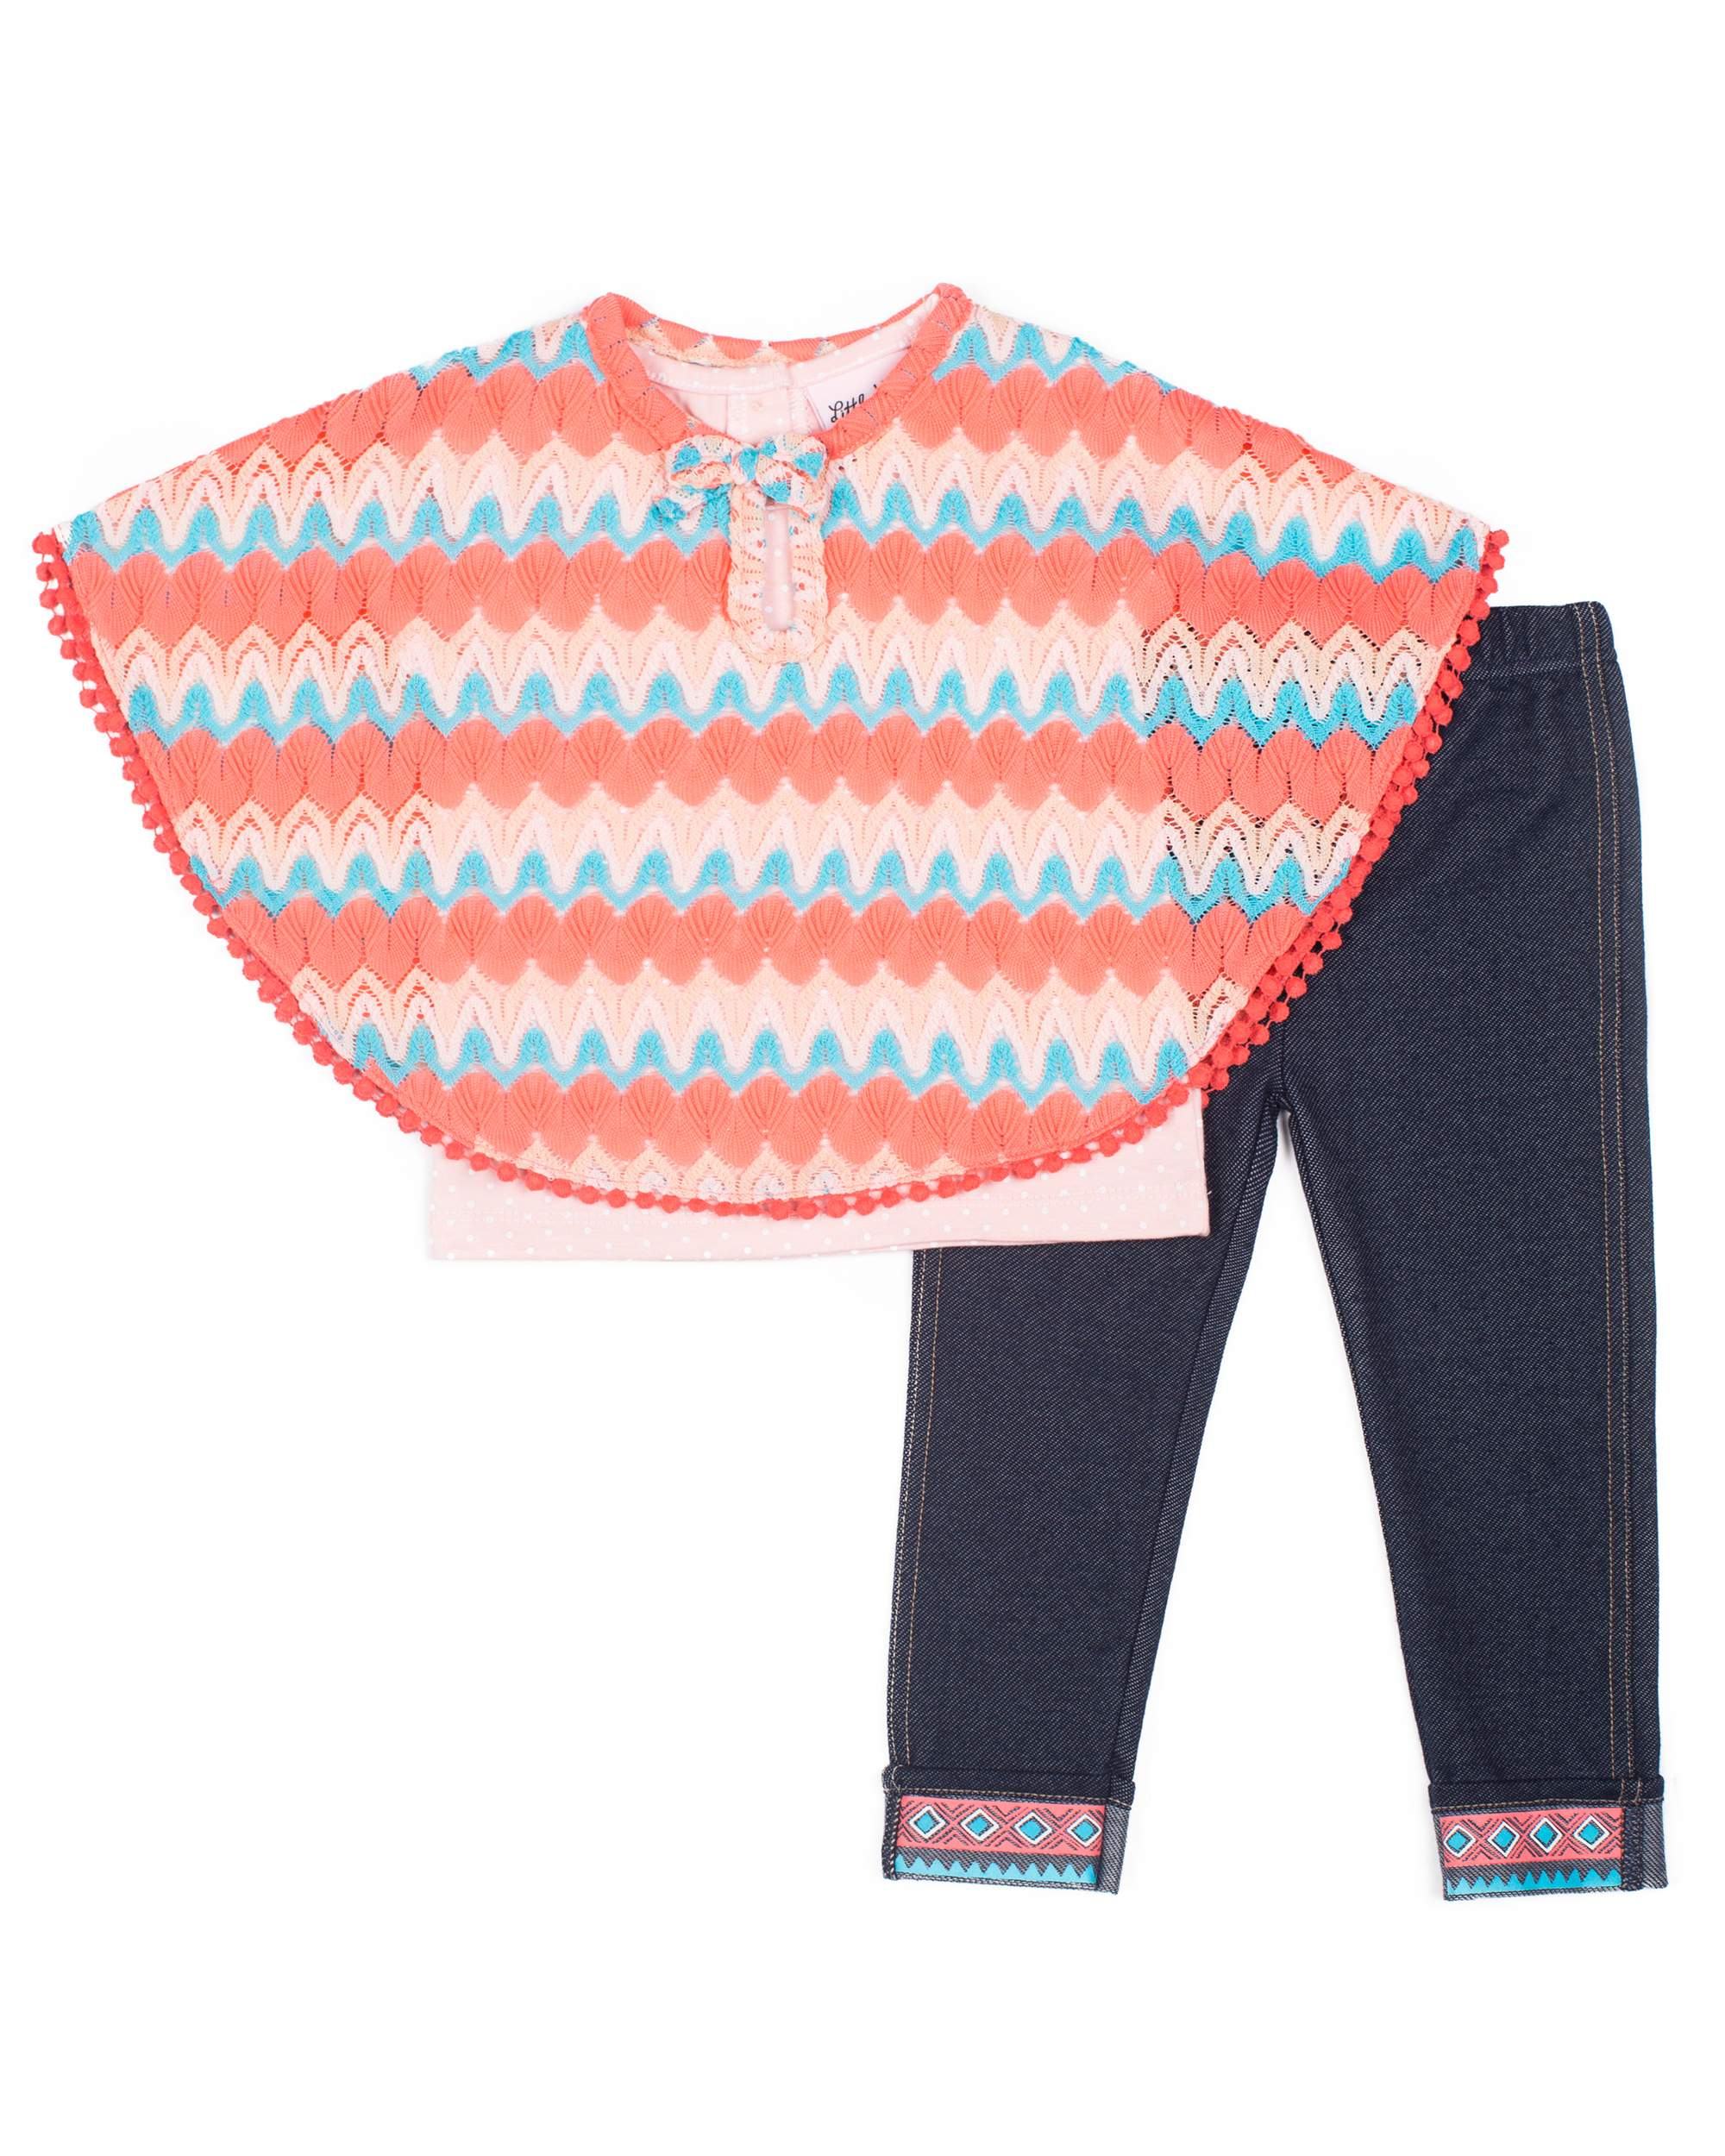 Chevron Knit Poncho, Tee and Knit Denim Legging, 3-Piece Outfit Set (Little Girls)